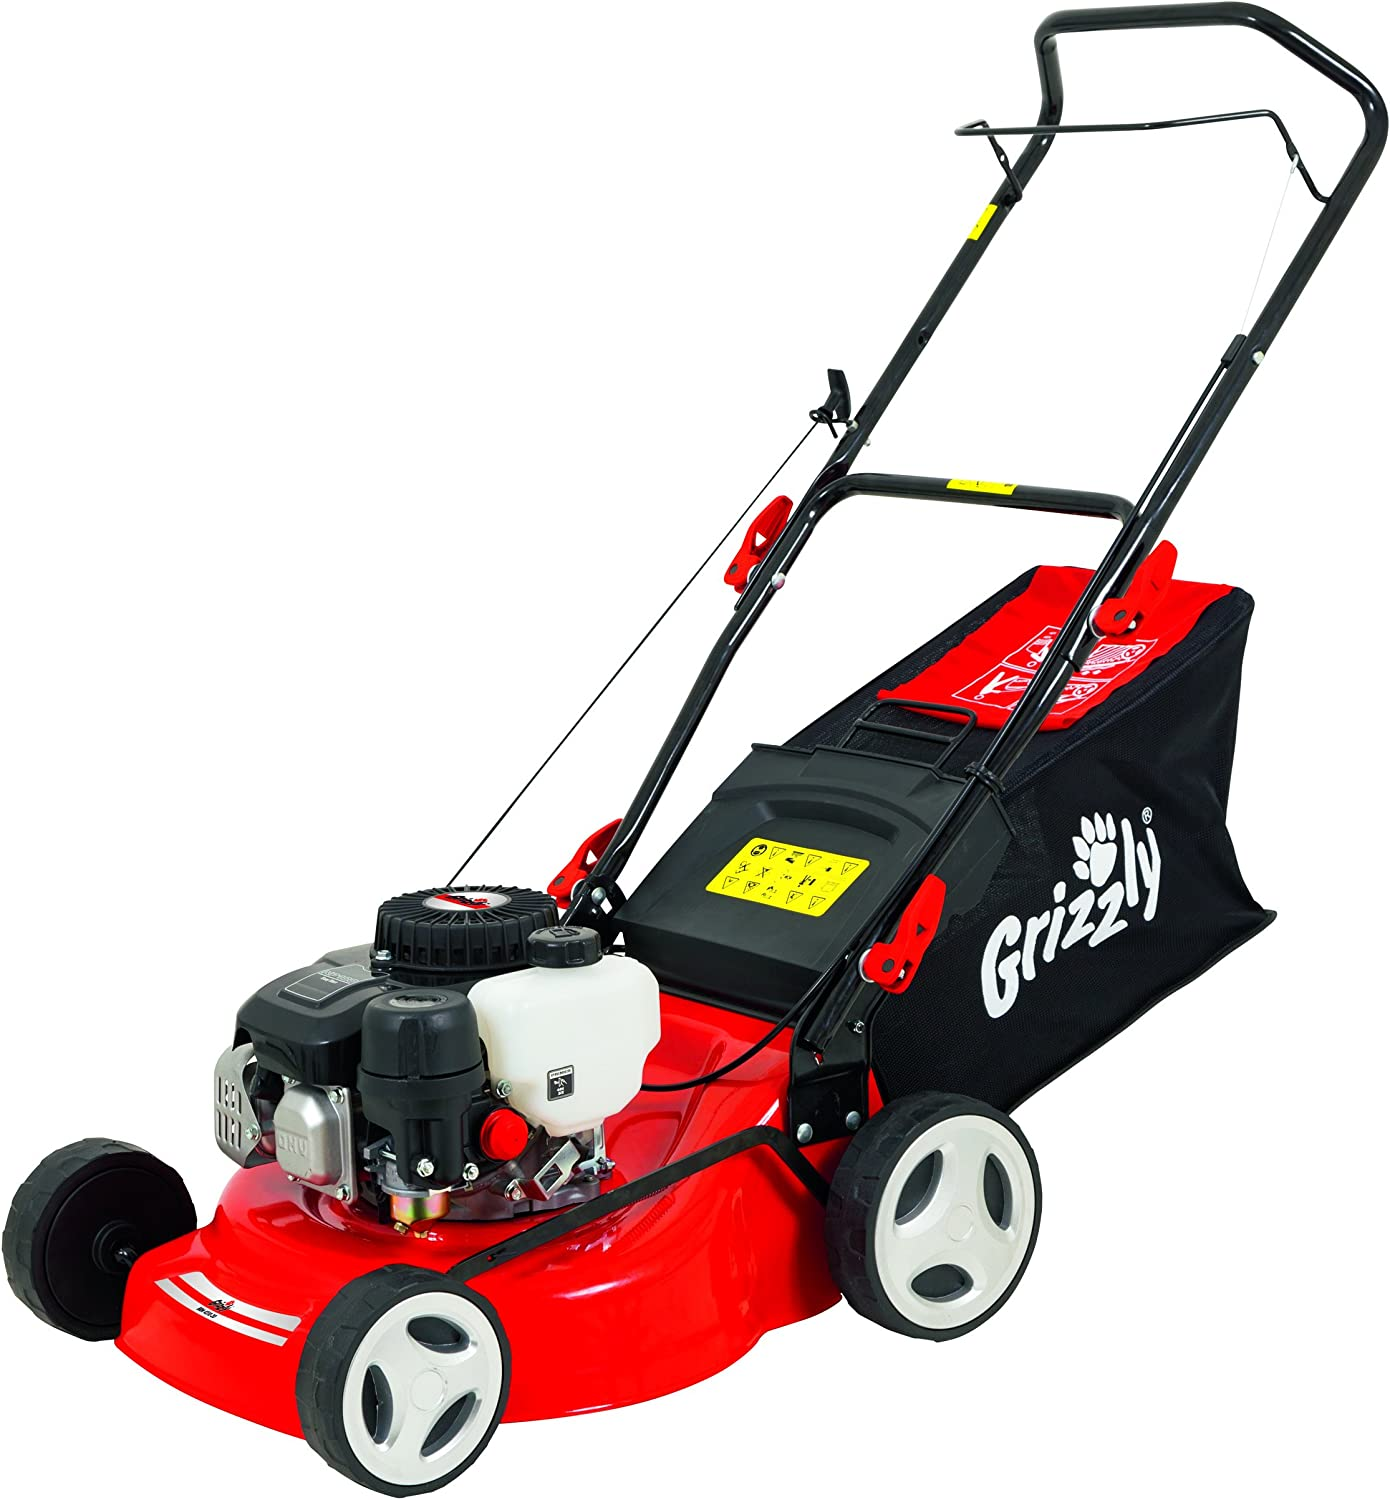 Cortacésped de gasolina Grizzly BRM 4210-10 1,6 kW 2,1 PS, 42 cm Anchura de corte, 5 veces regulable en altura